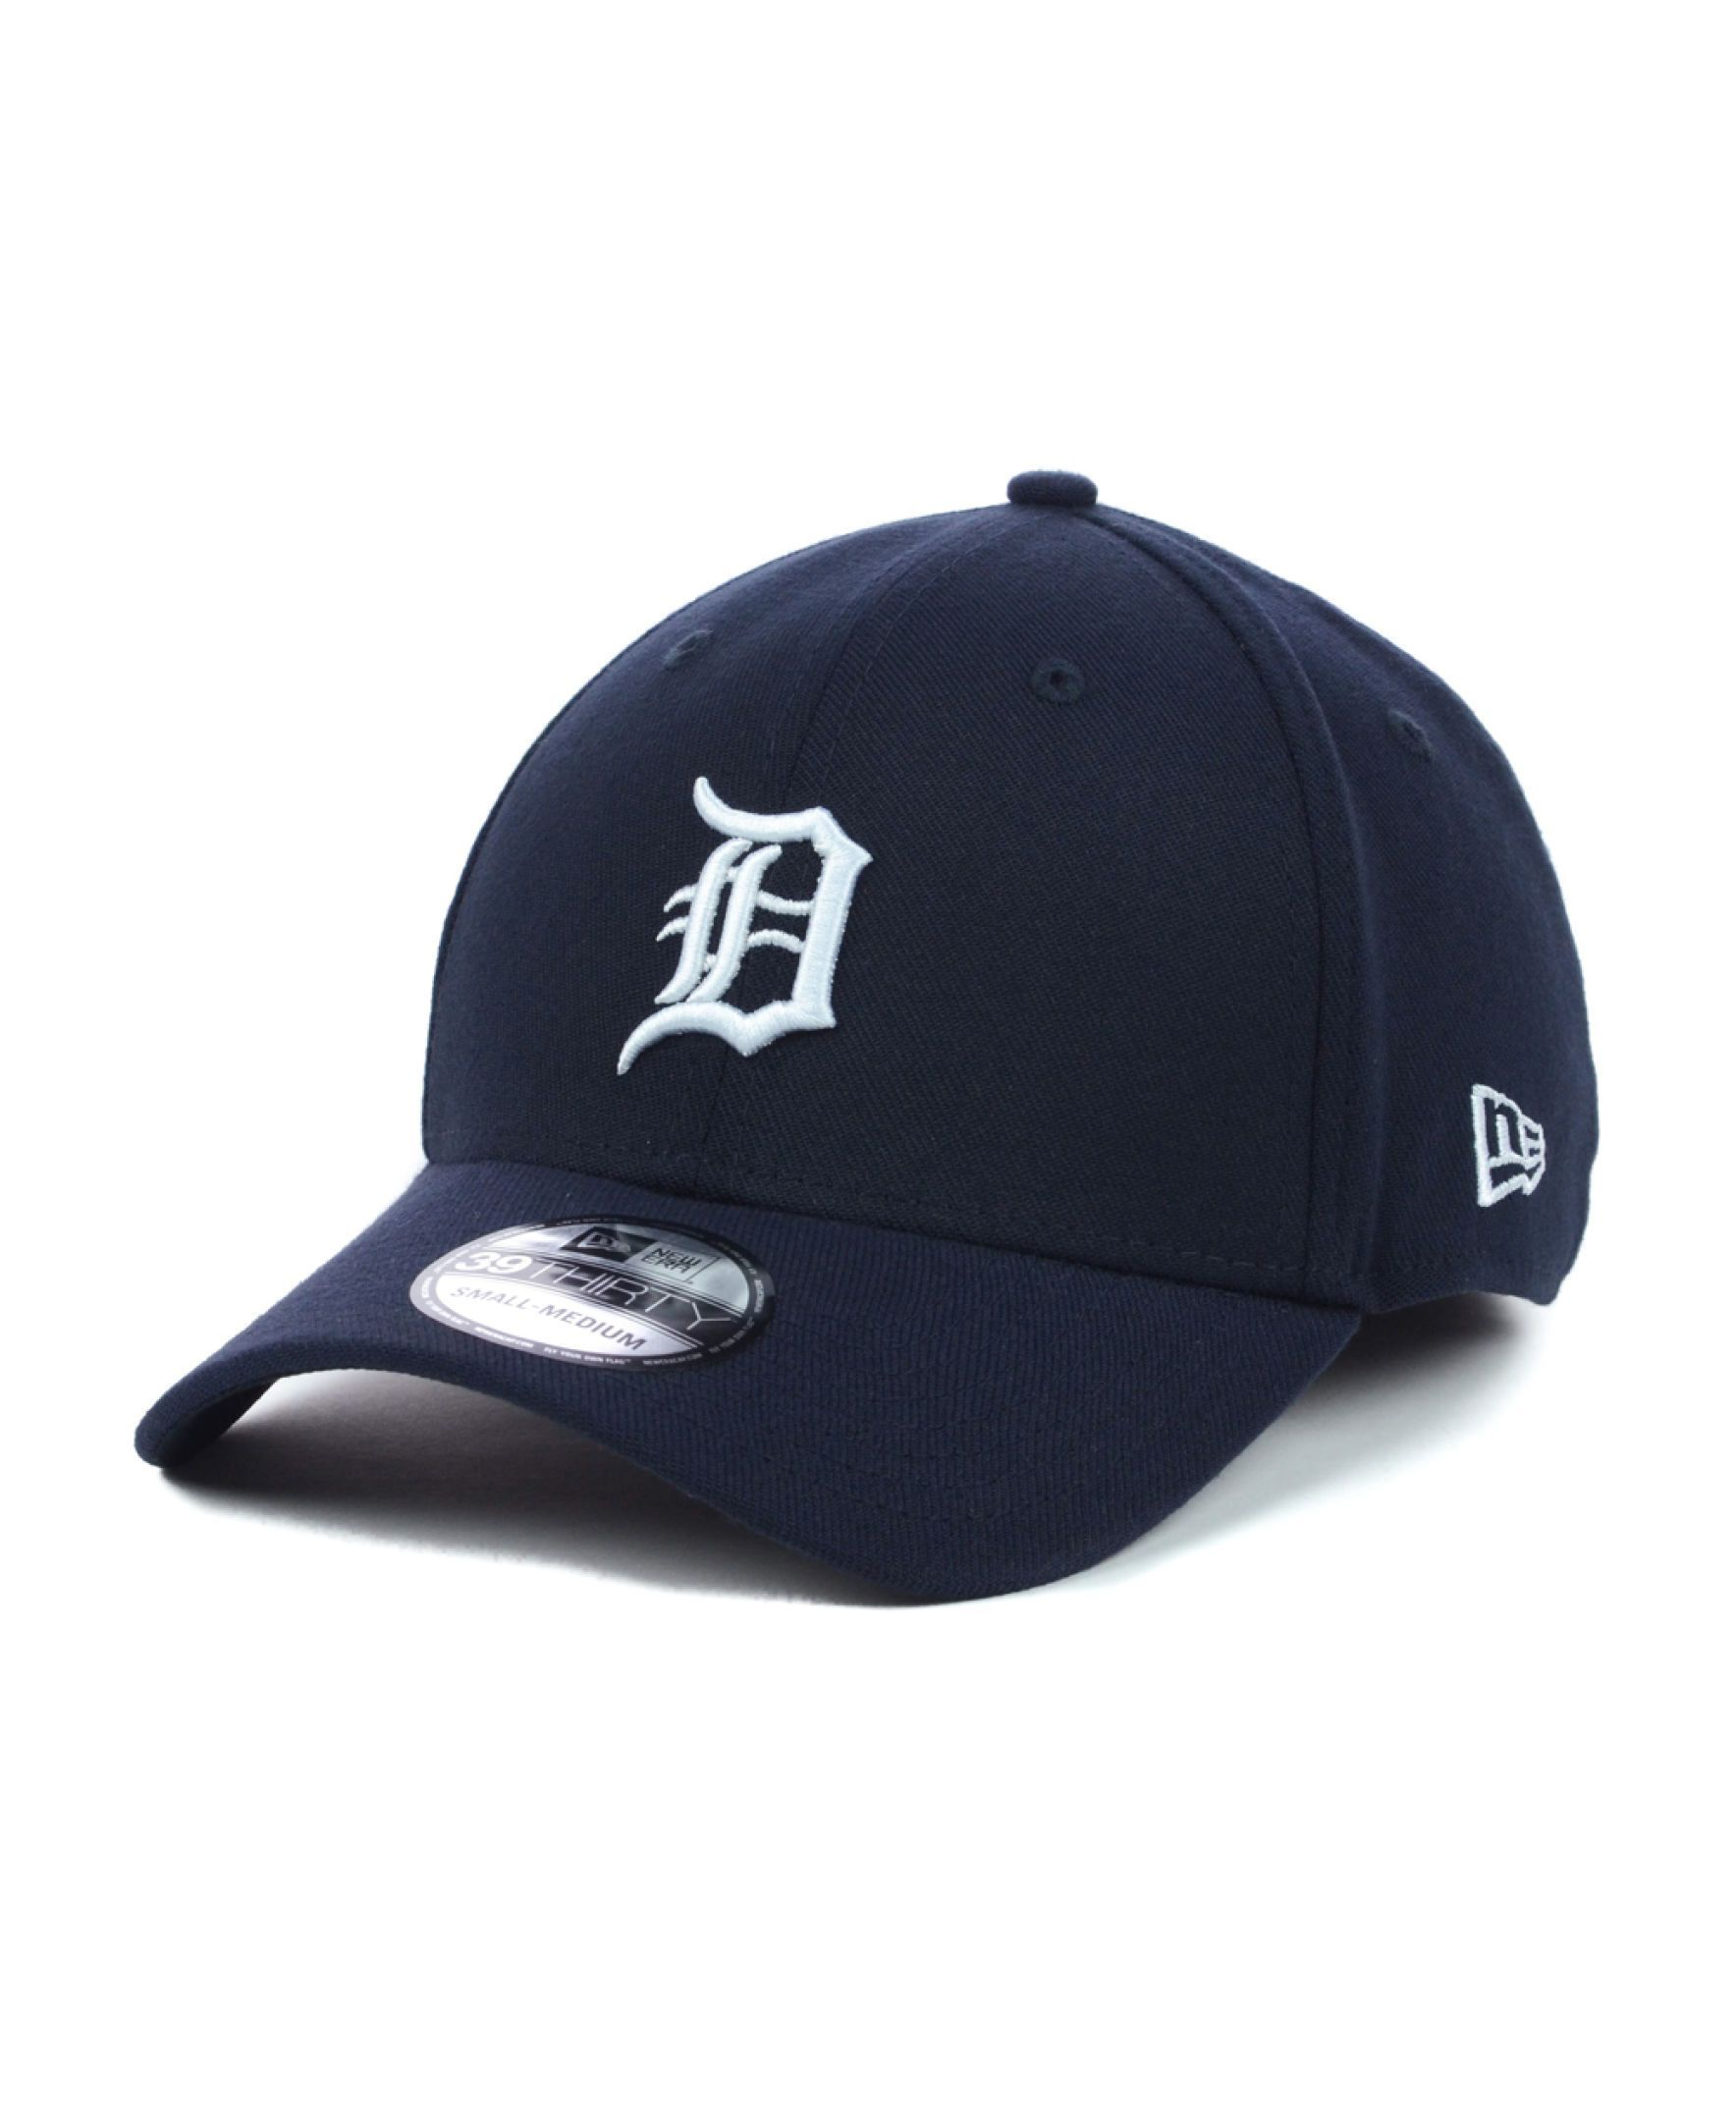 cddc8e6c7 New Era Detroit Tigers Mlb Team Classic 39THIRTY Cap